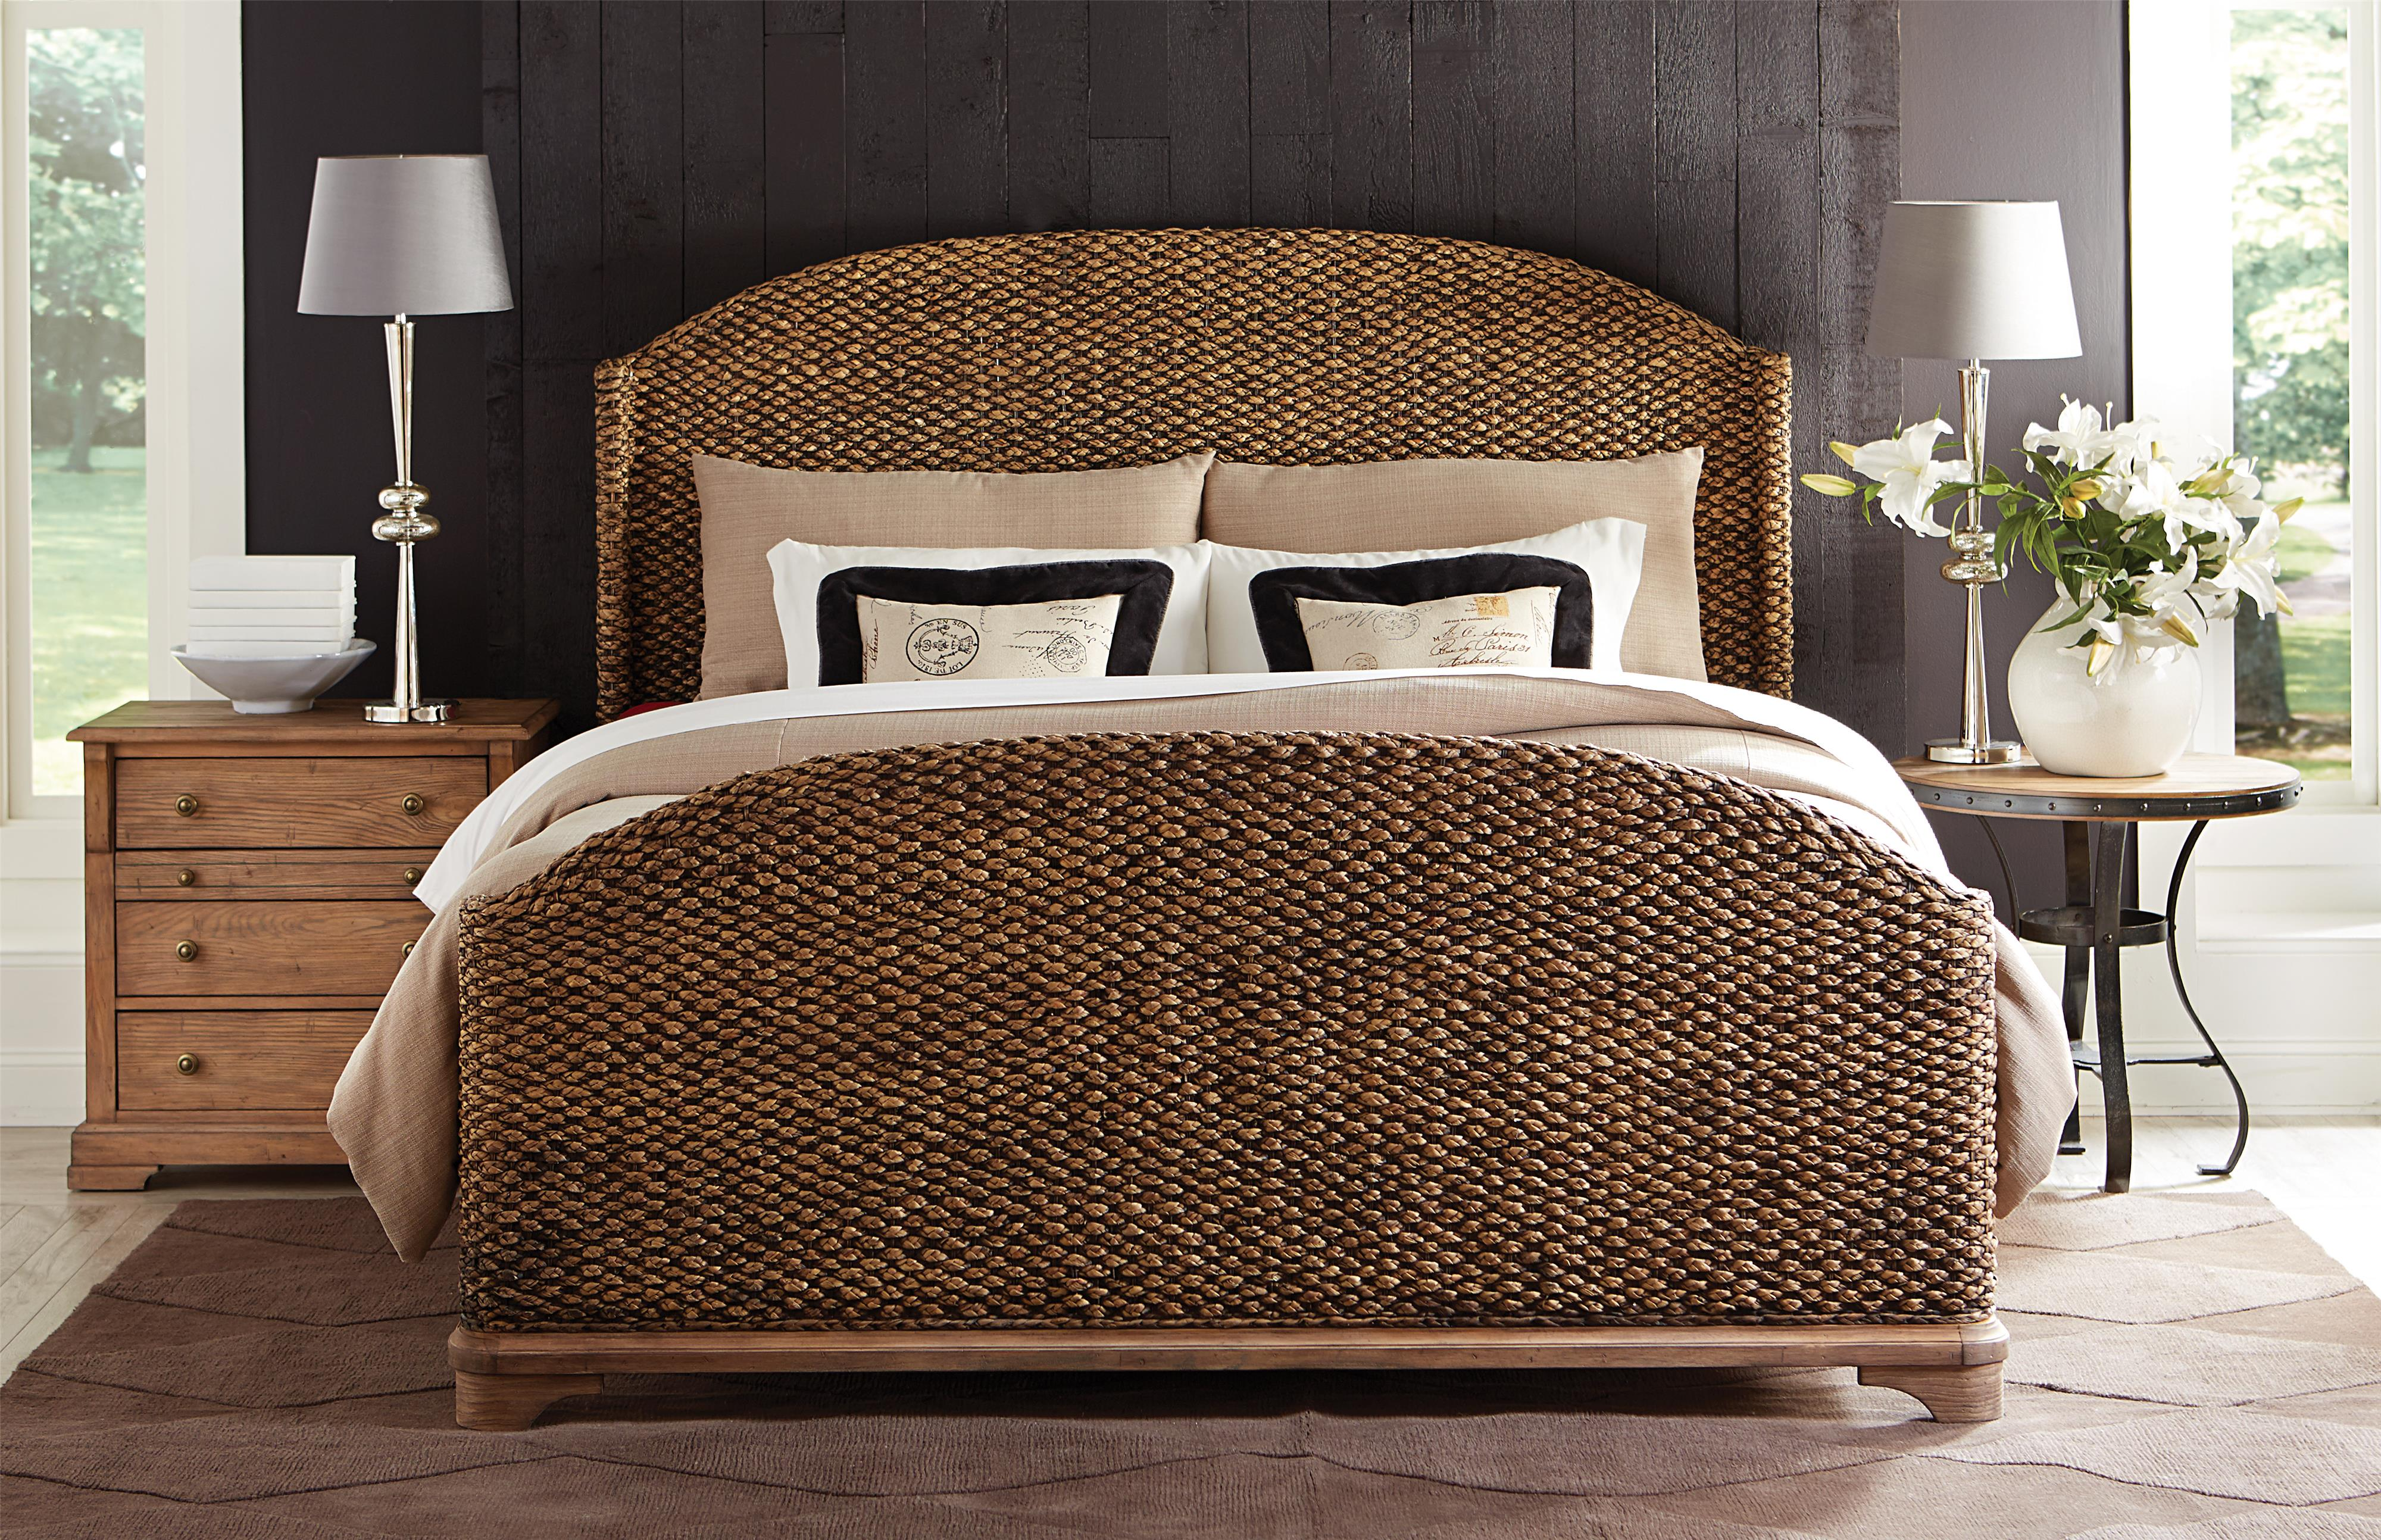 Sherborne Seagrass Queen Bed